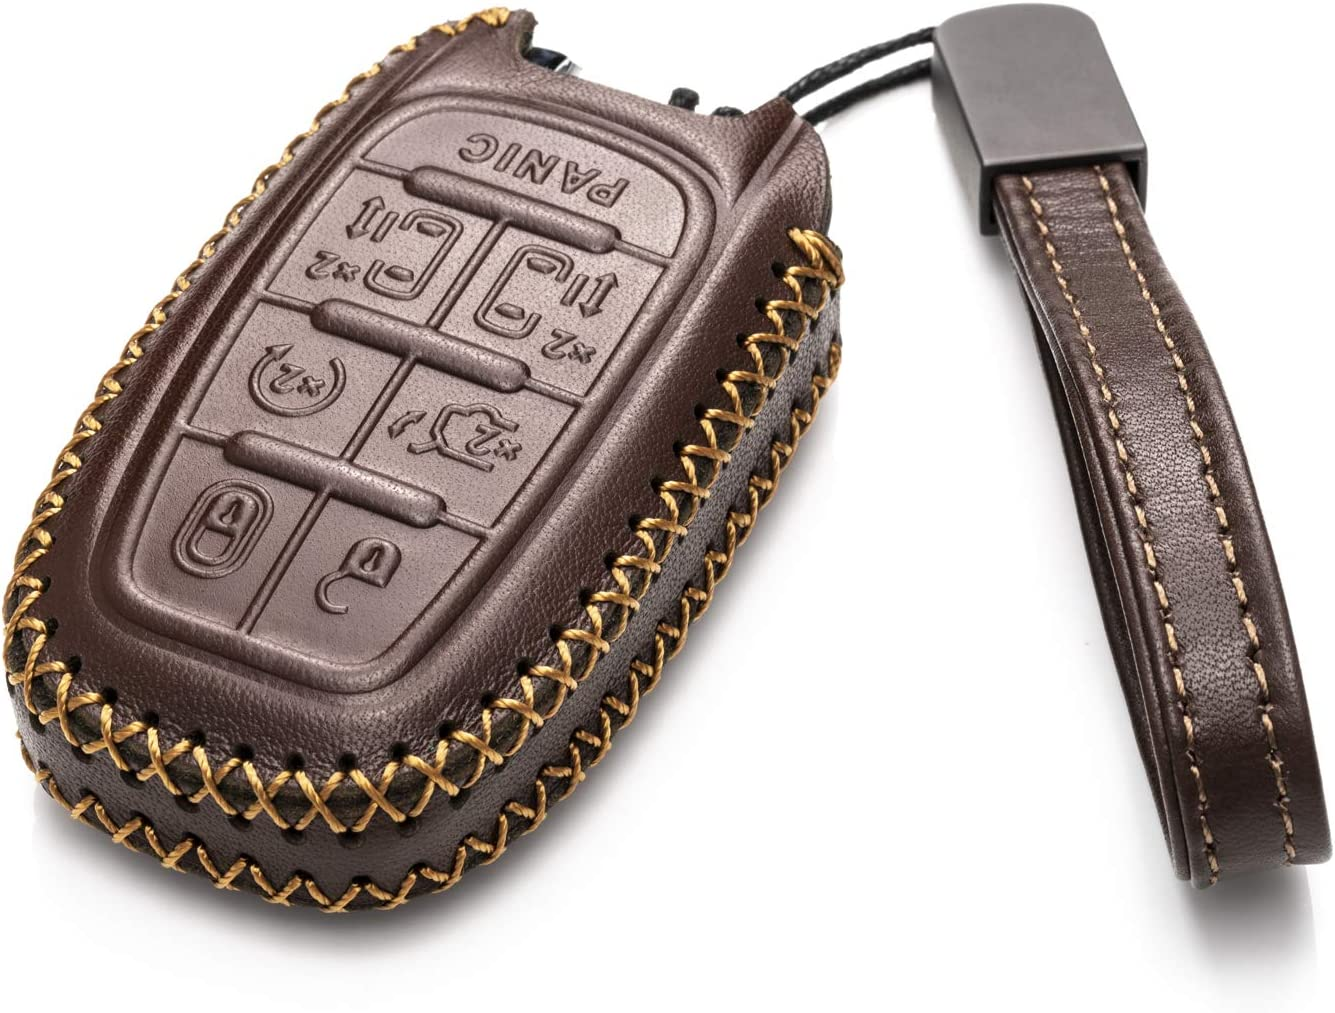 Vitodeco Genuine Leather Smart Key Fob Case Cover Protector with Leather Key Chain for 2017-2020 Chrysler Pacifica 7-Button, Brown